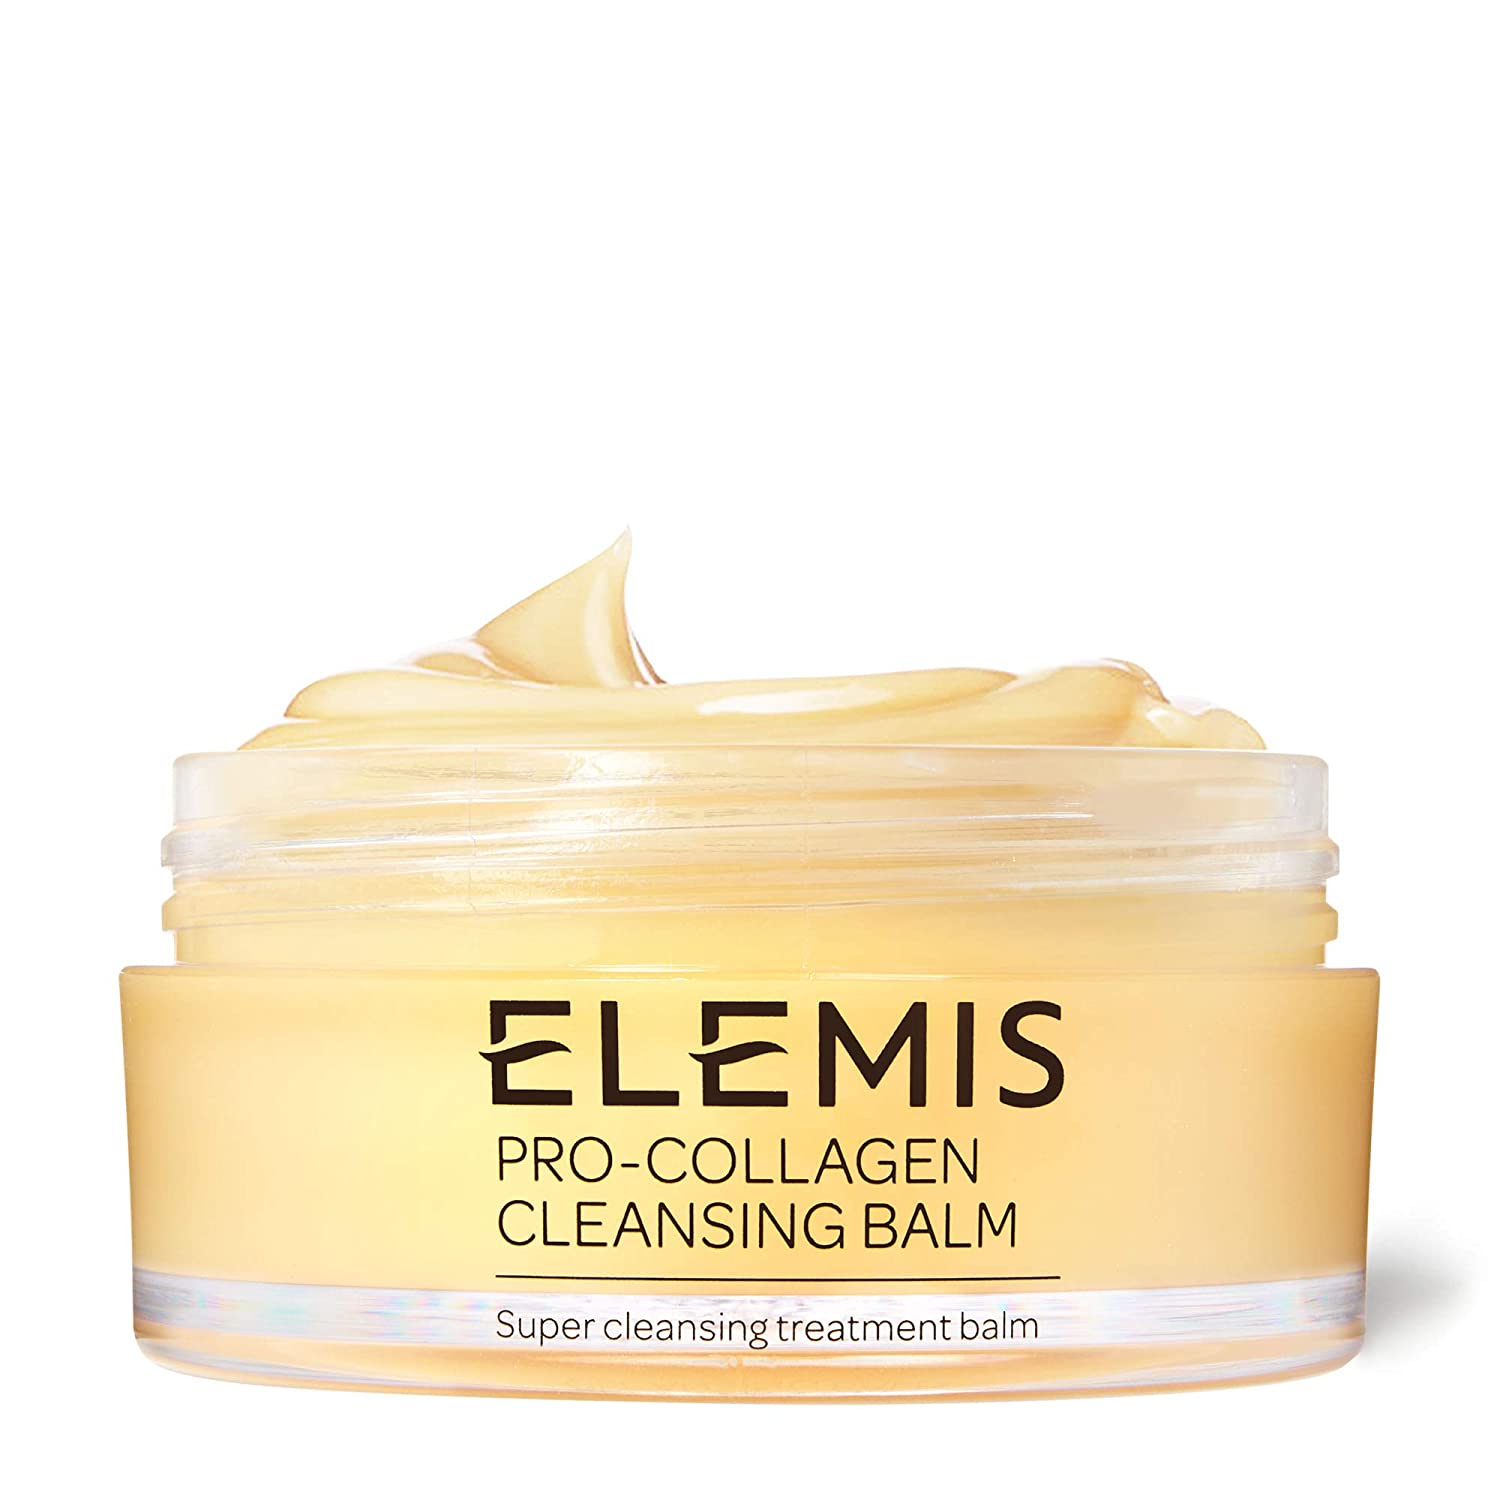 cleansing-balm-Elemis Pro-Collagen Cleansing Balm